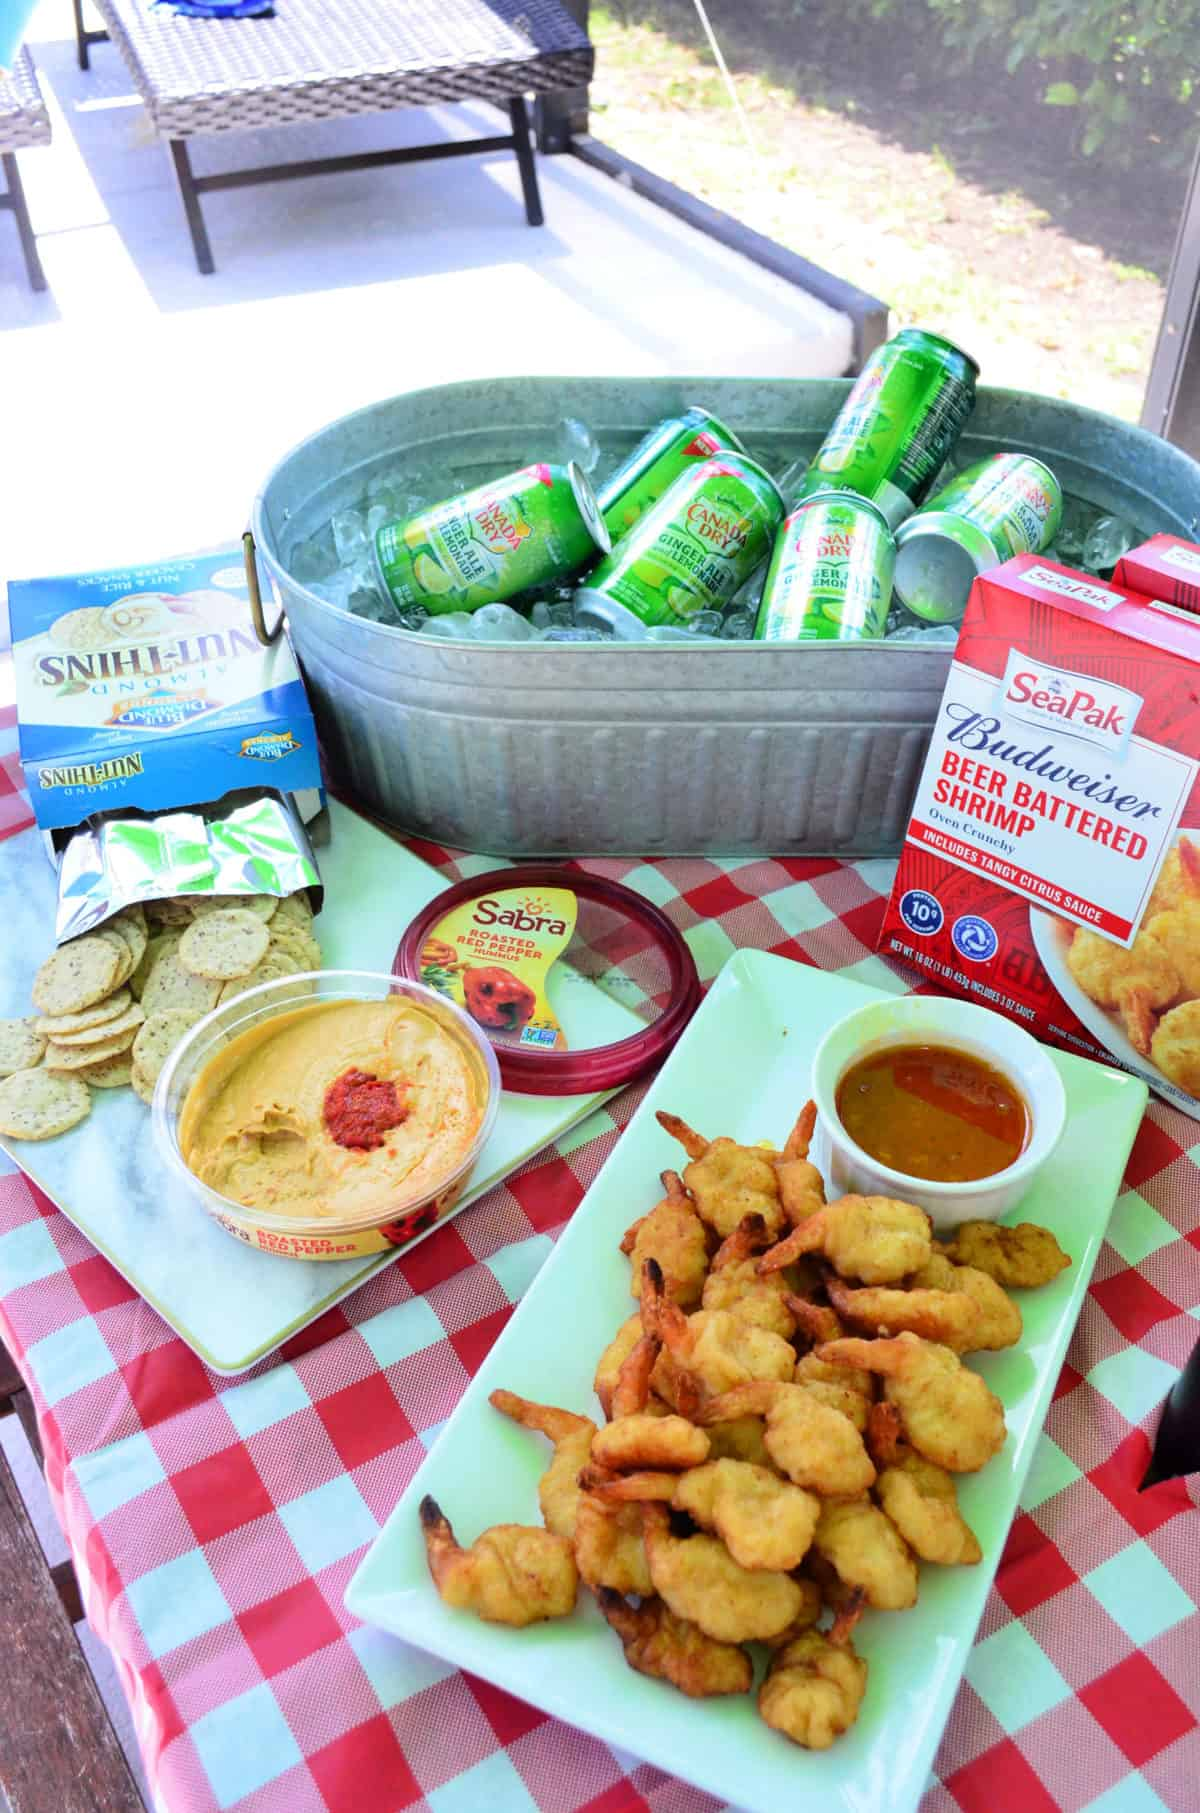 SeaPak Budweiser Beer Battered Shrimp next to iced Gingerales, hummus, crackers on picnic table.